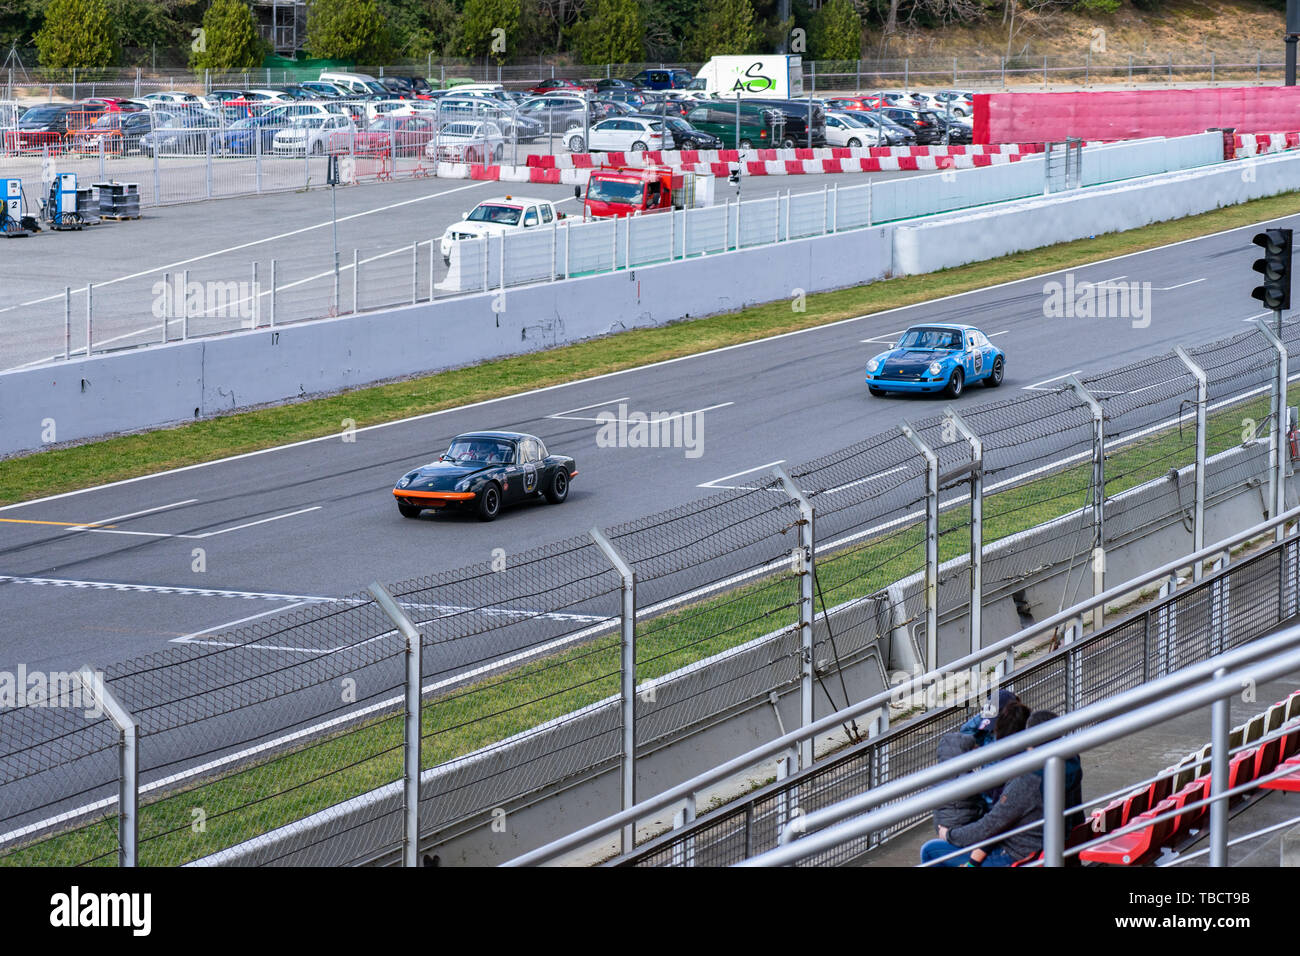 Lotus Elan Stock Photos & Lotus Elan Stock Images - Page 2 - Alamy